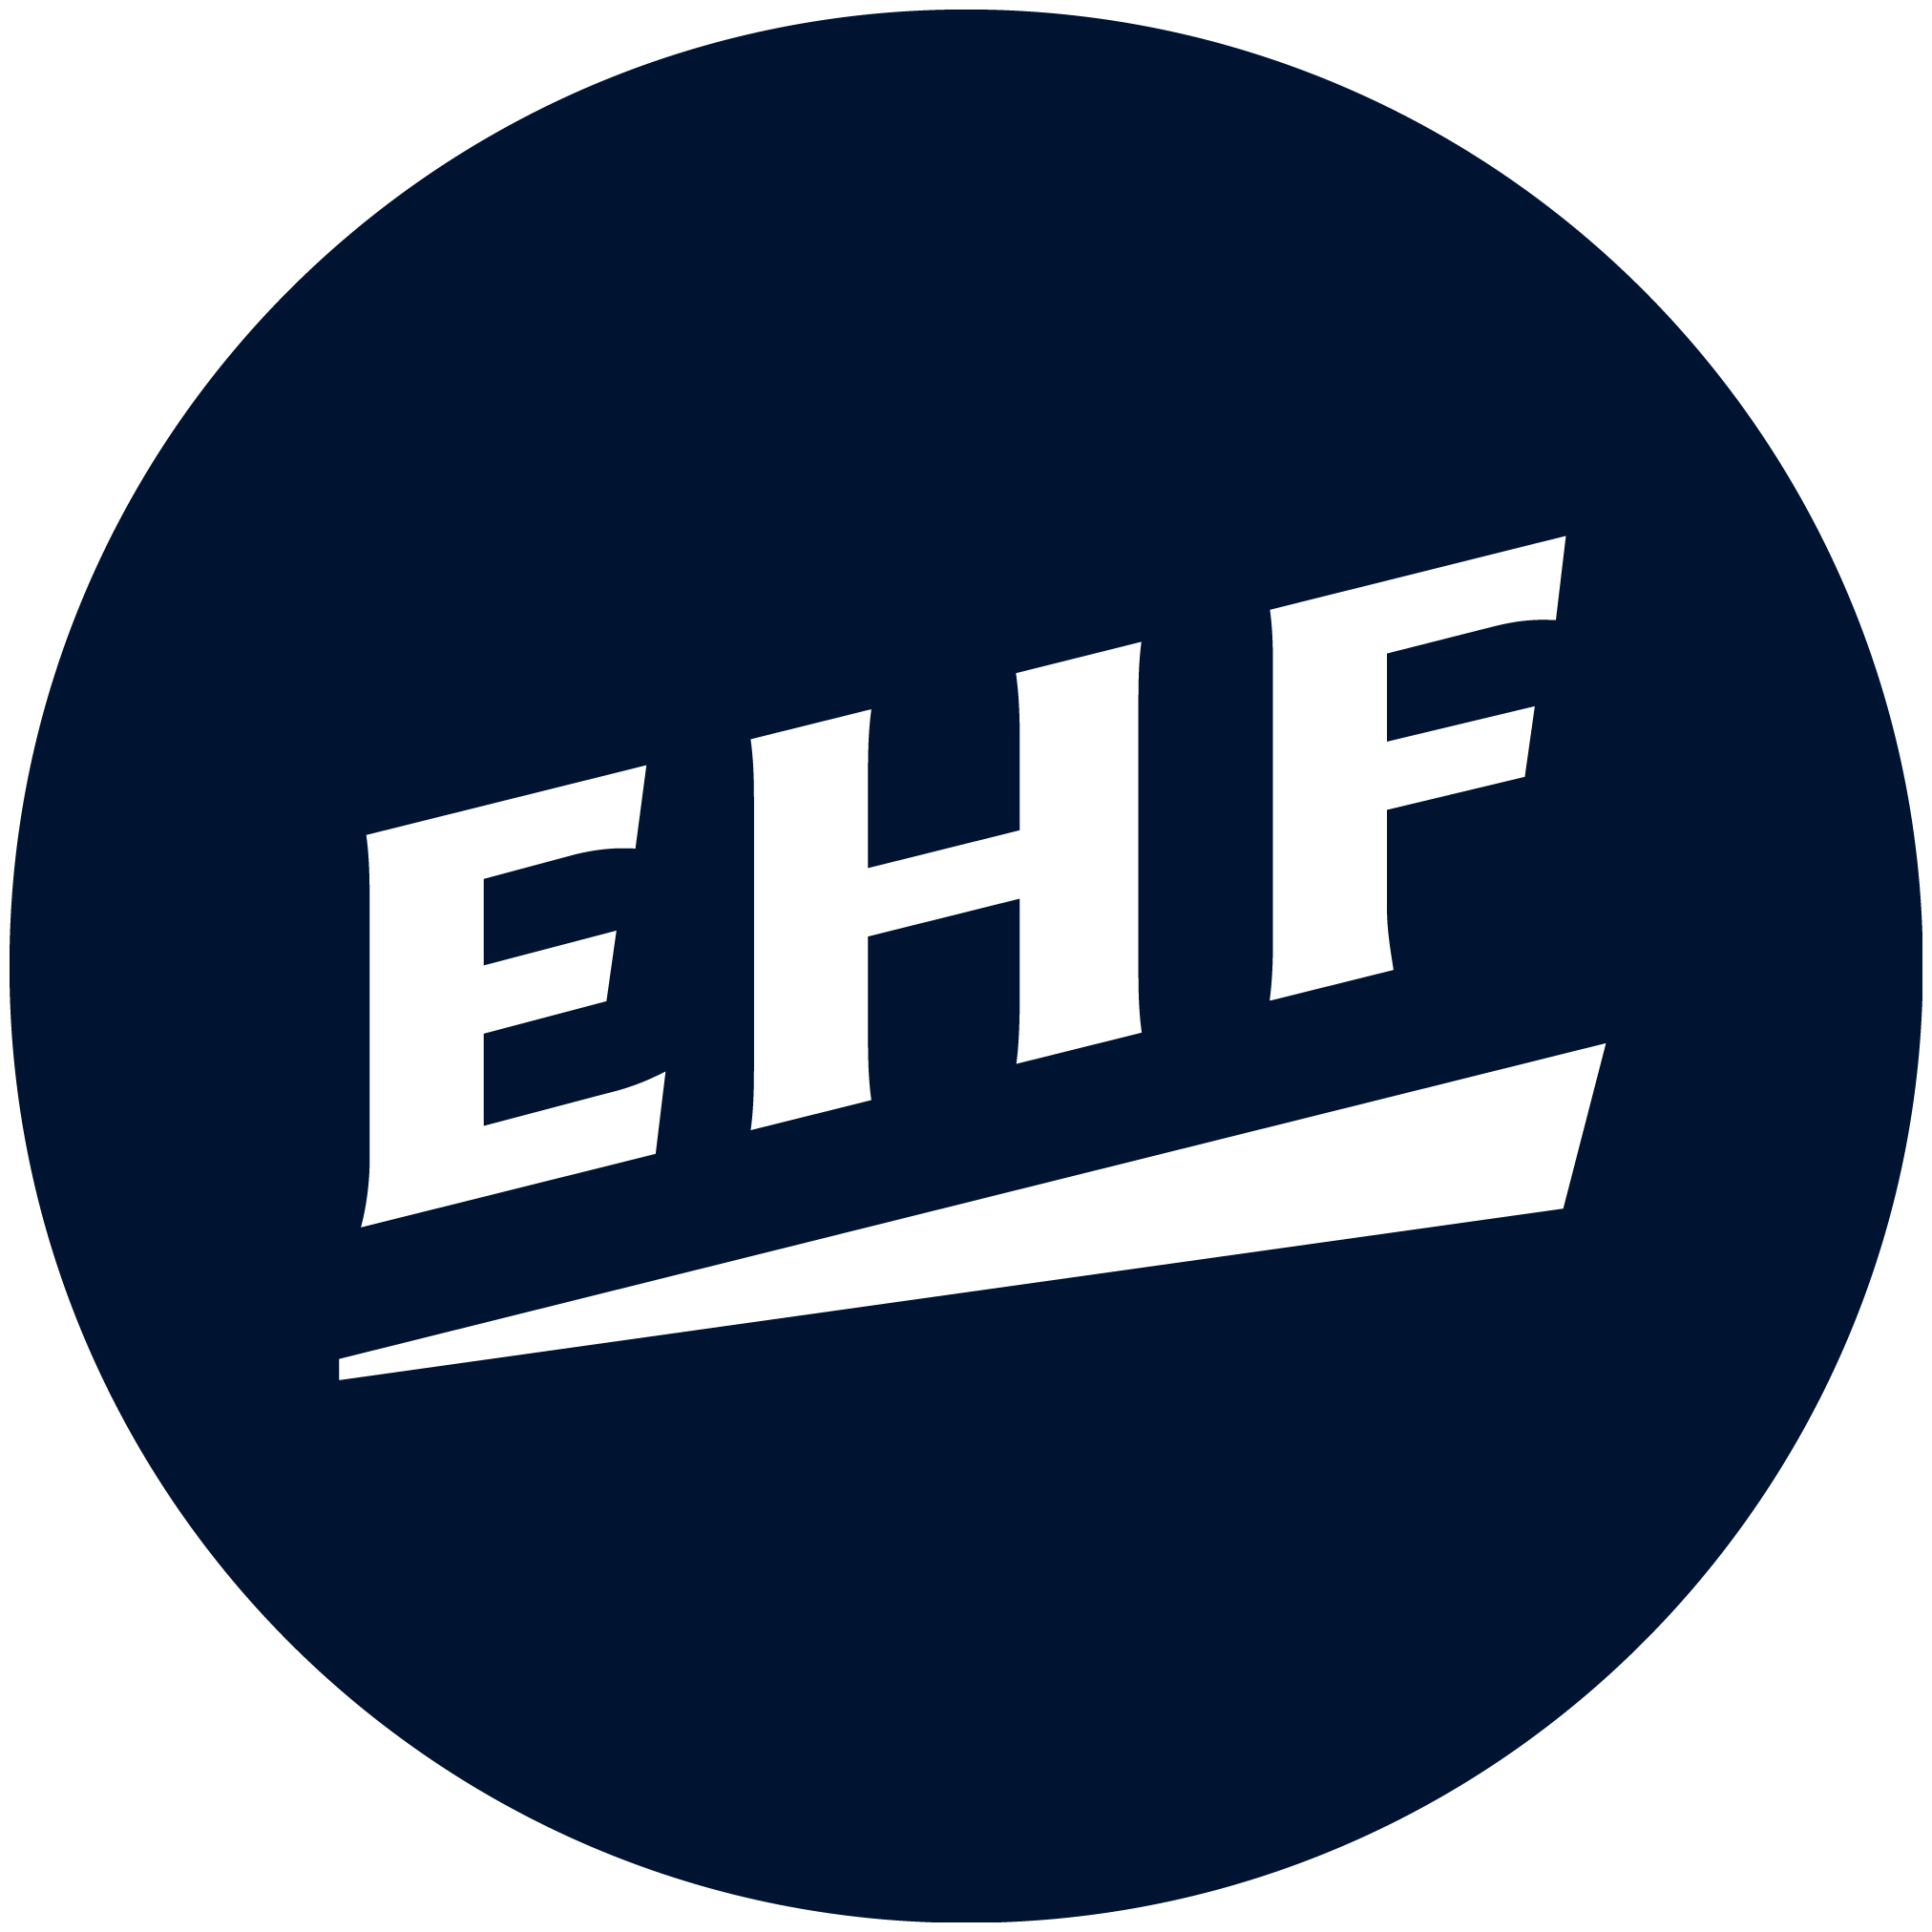 2021 European Handball Men's 20 EHF Championship